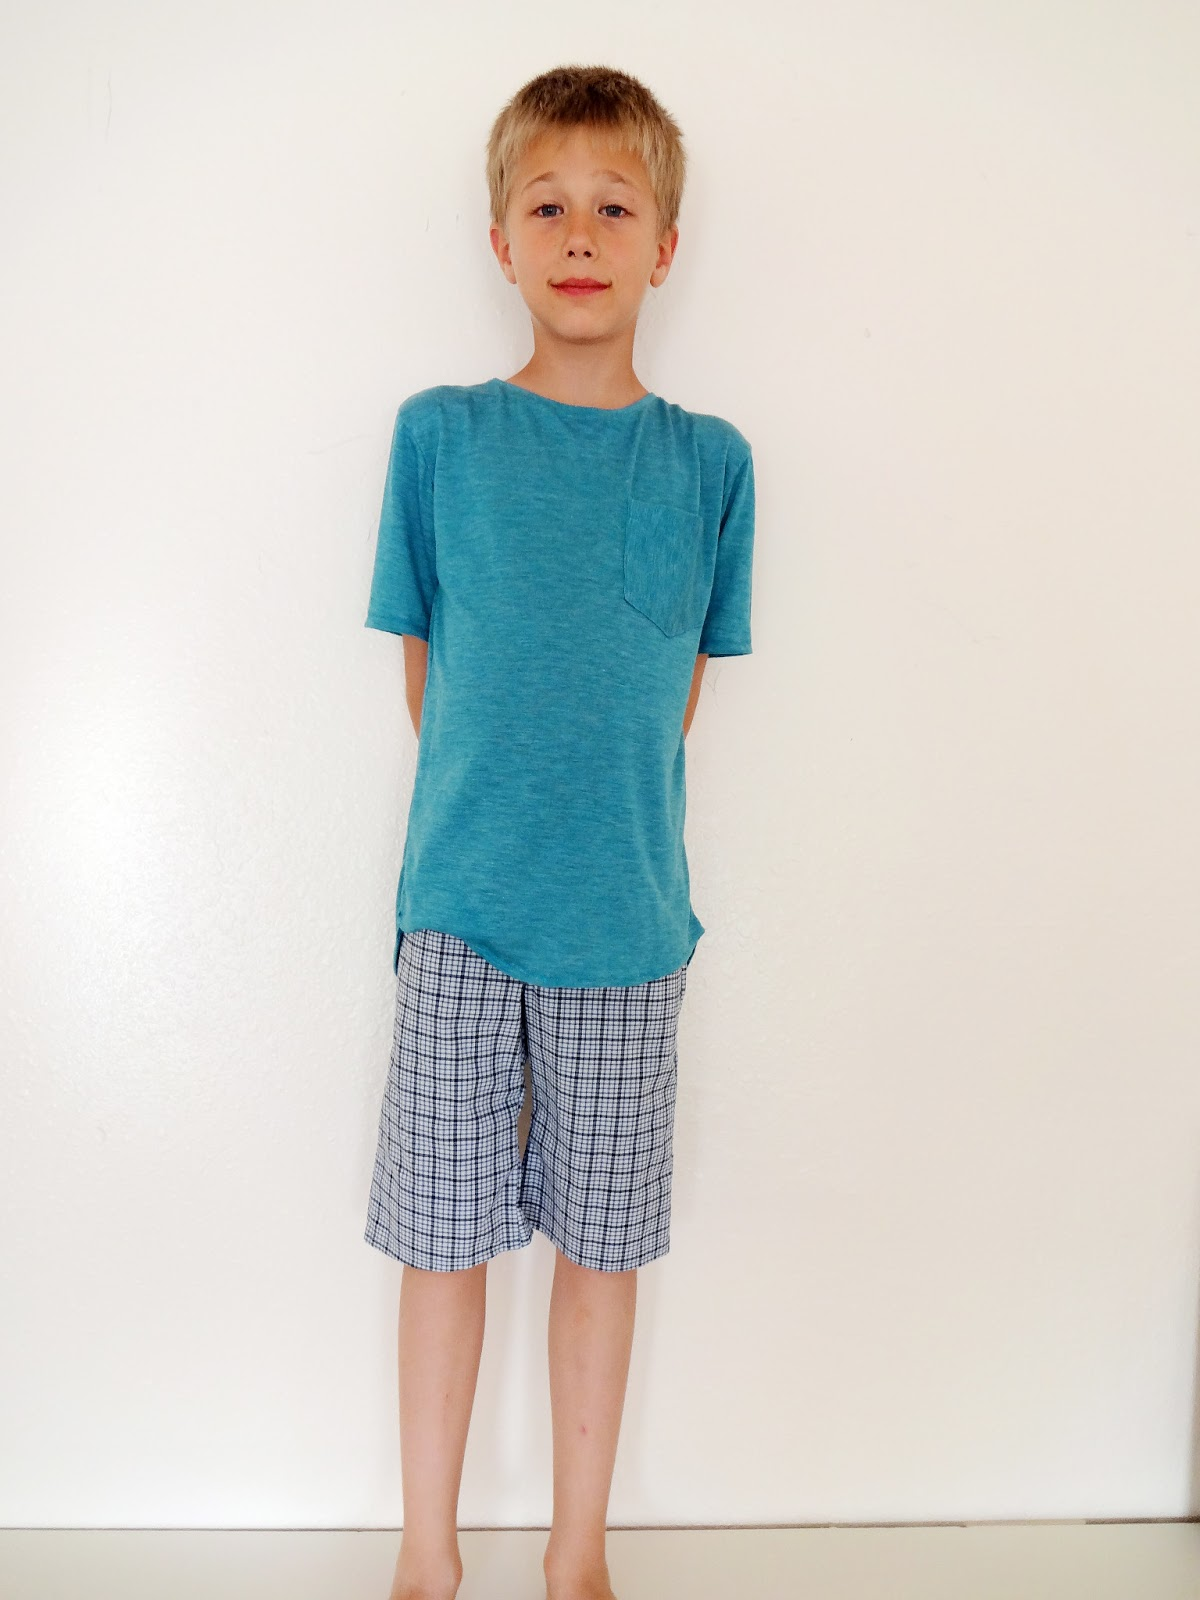 Shorts for Boys Shorts for boys at Abercrombie Kids come in so many styles, fits, and colors, it'll be easy to fill his dresser drawers with all of his favorites. From classic chinos to cool cargos, and everything in between, we've got his warm-weather look pretty much covered.